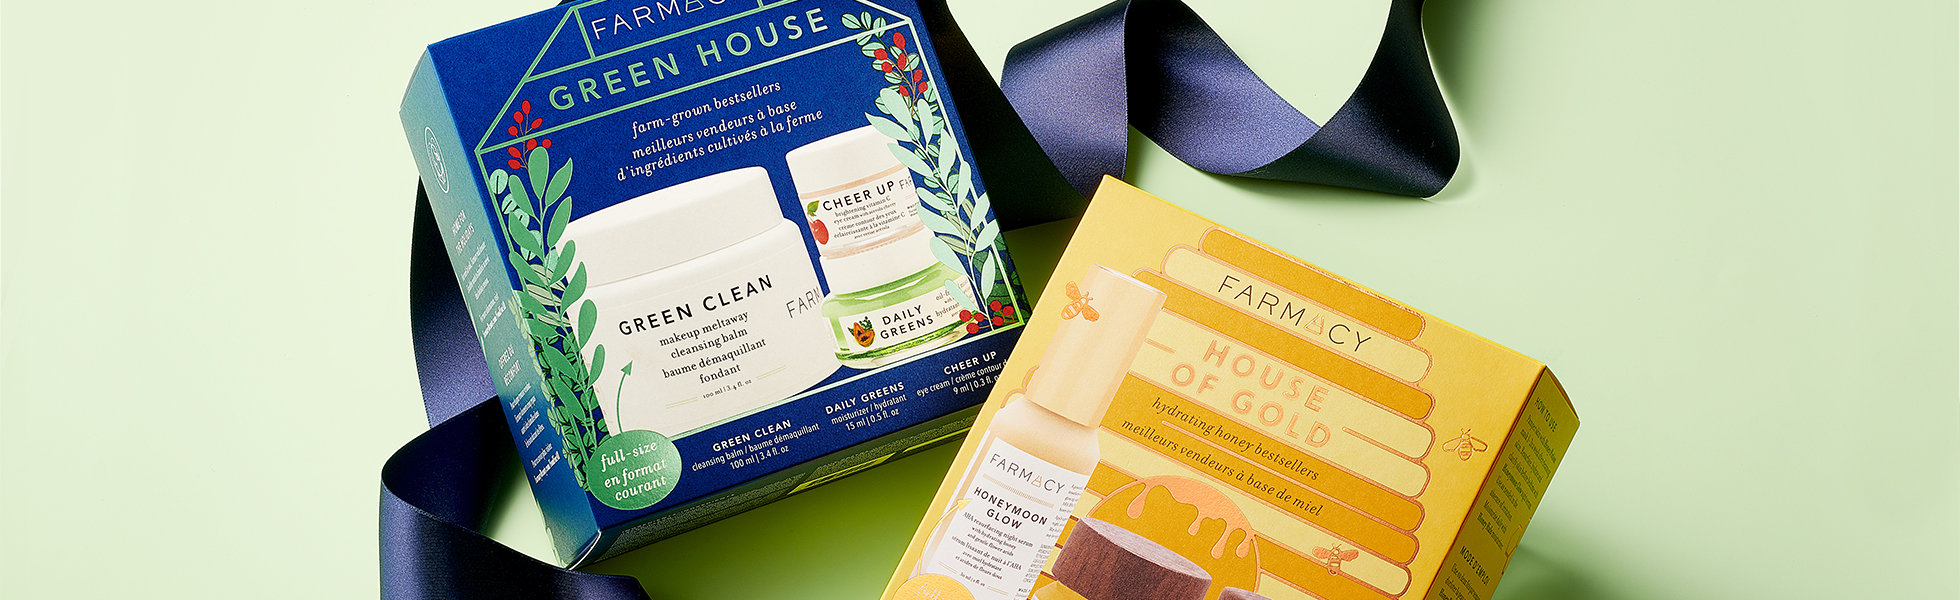 FARMACY Holiday Collection